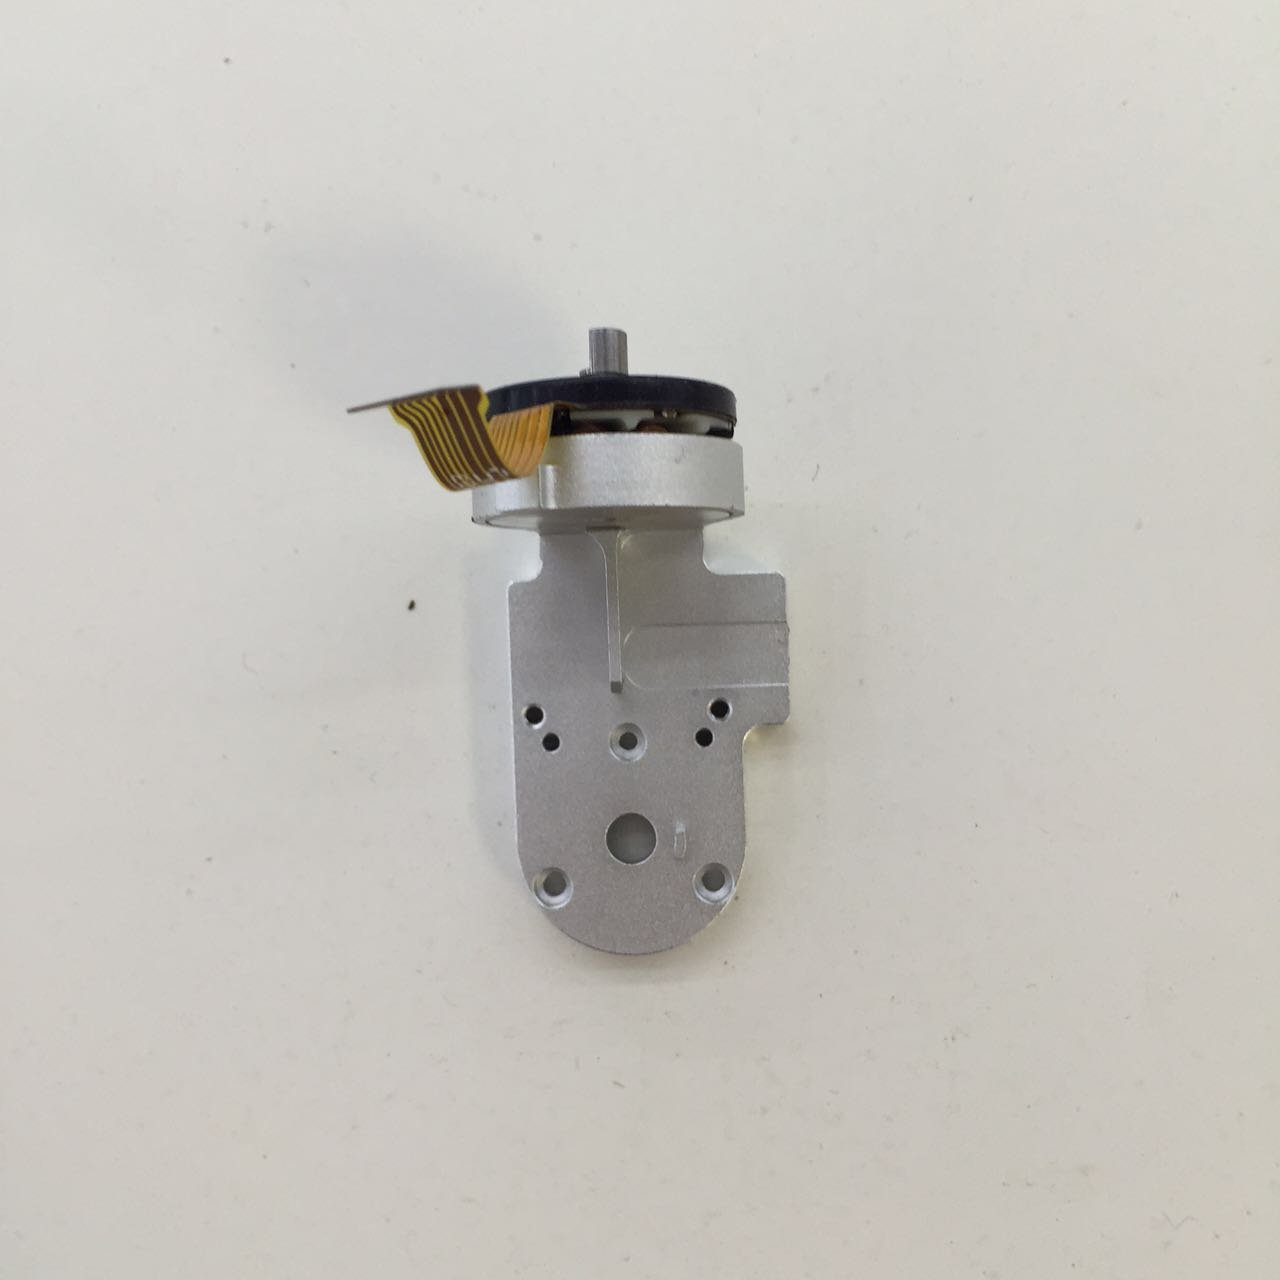 Roll Arm & Roll Motor Gimbal Camera Repair Part for DJI Phantom 3 Advanced/Professional Quadcopter by XmiPbs